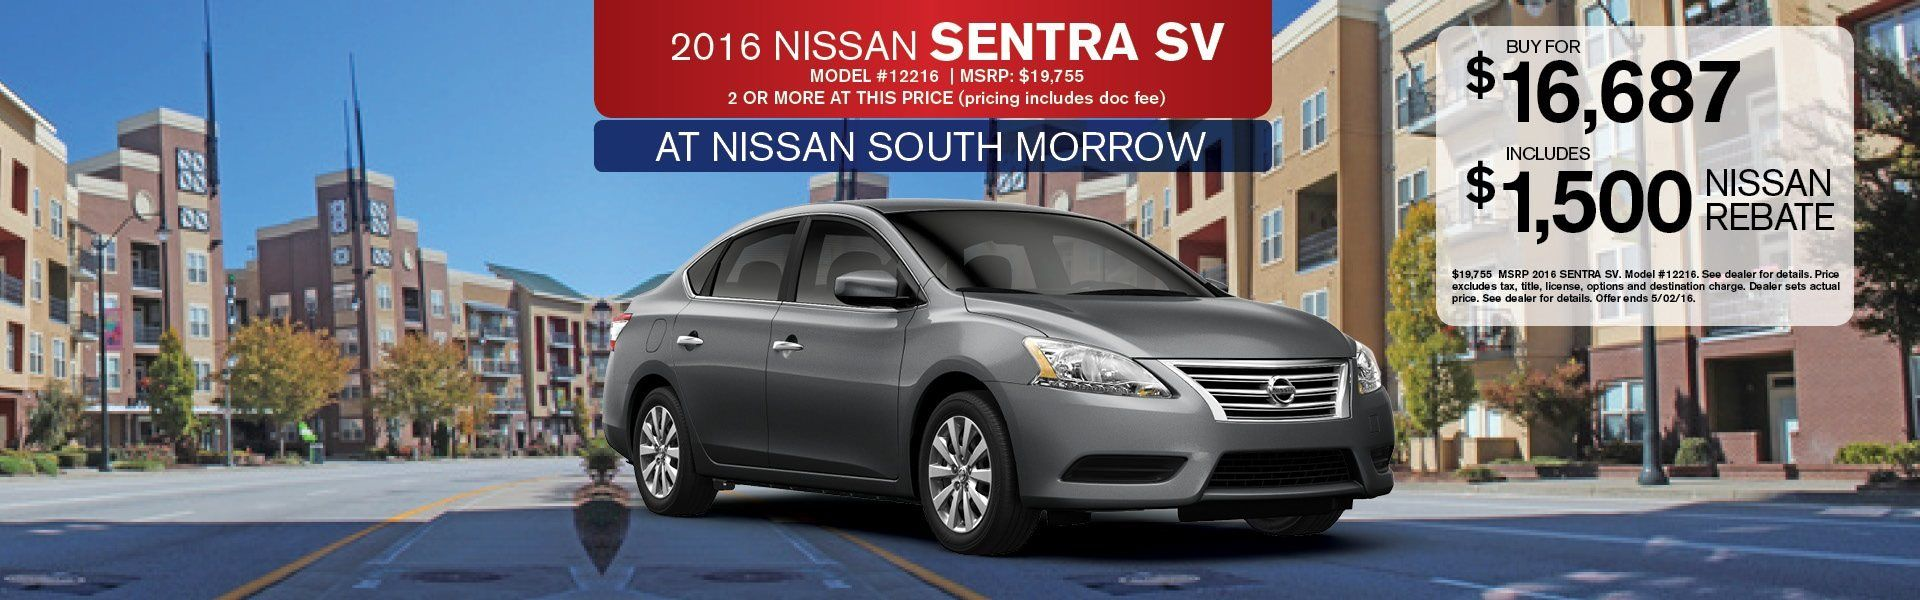 Nissan South Morrow New And Used Car Dealership Near Atlanta Ga Car Dealership Nissan Nissan Maxima